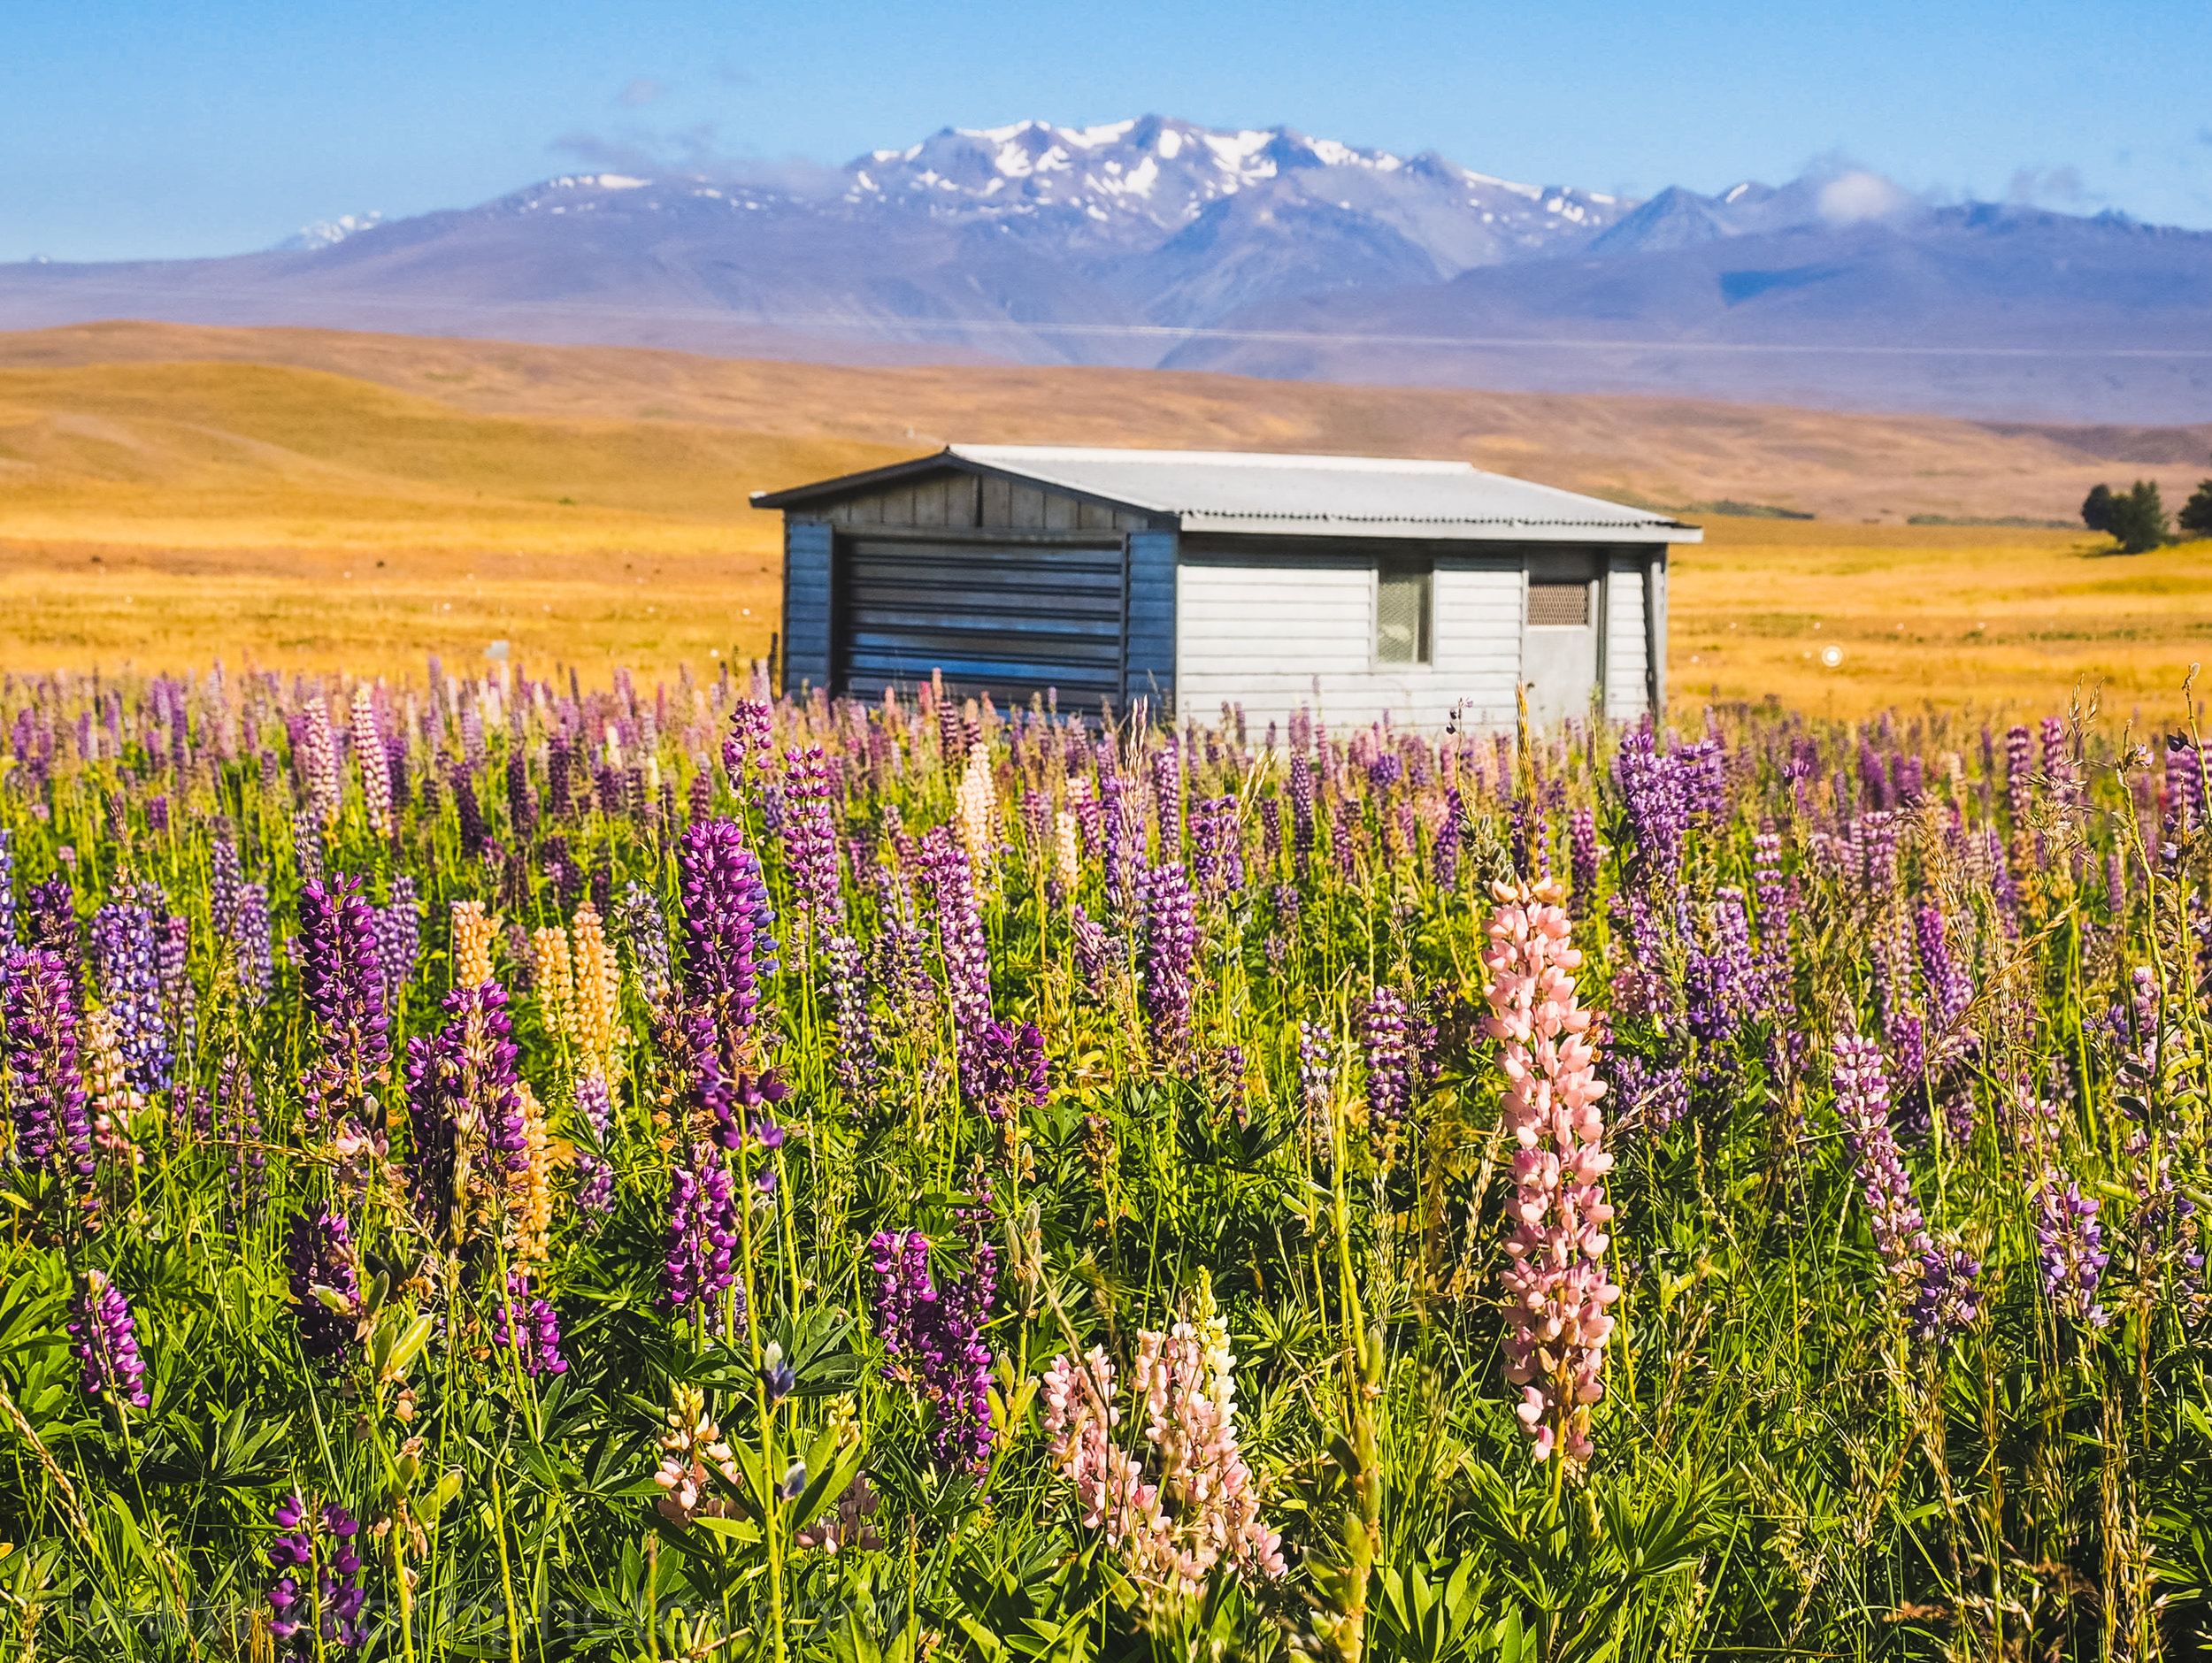 Lupine fields near Tekapo